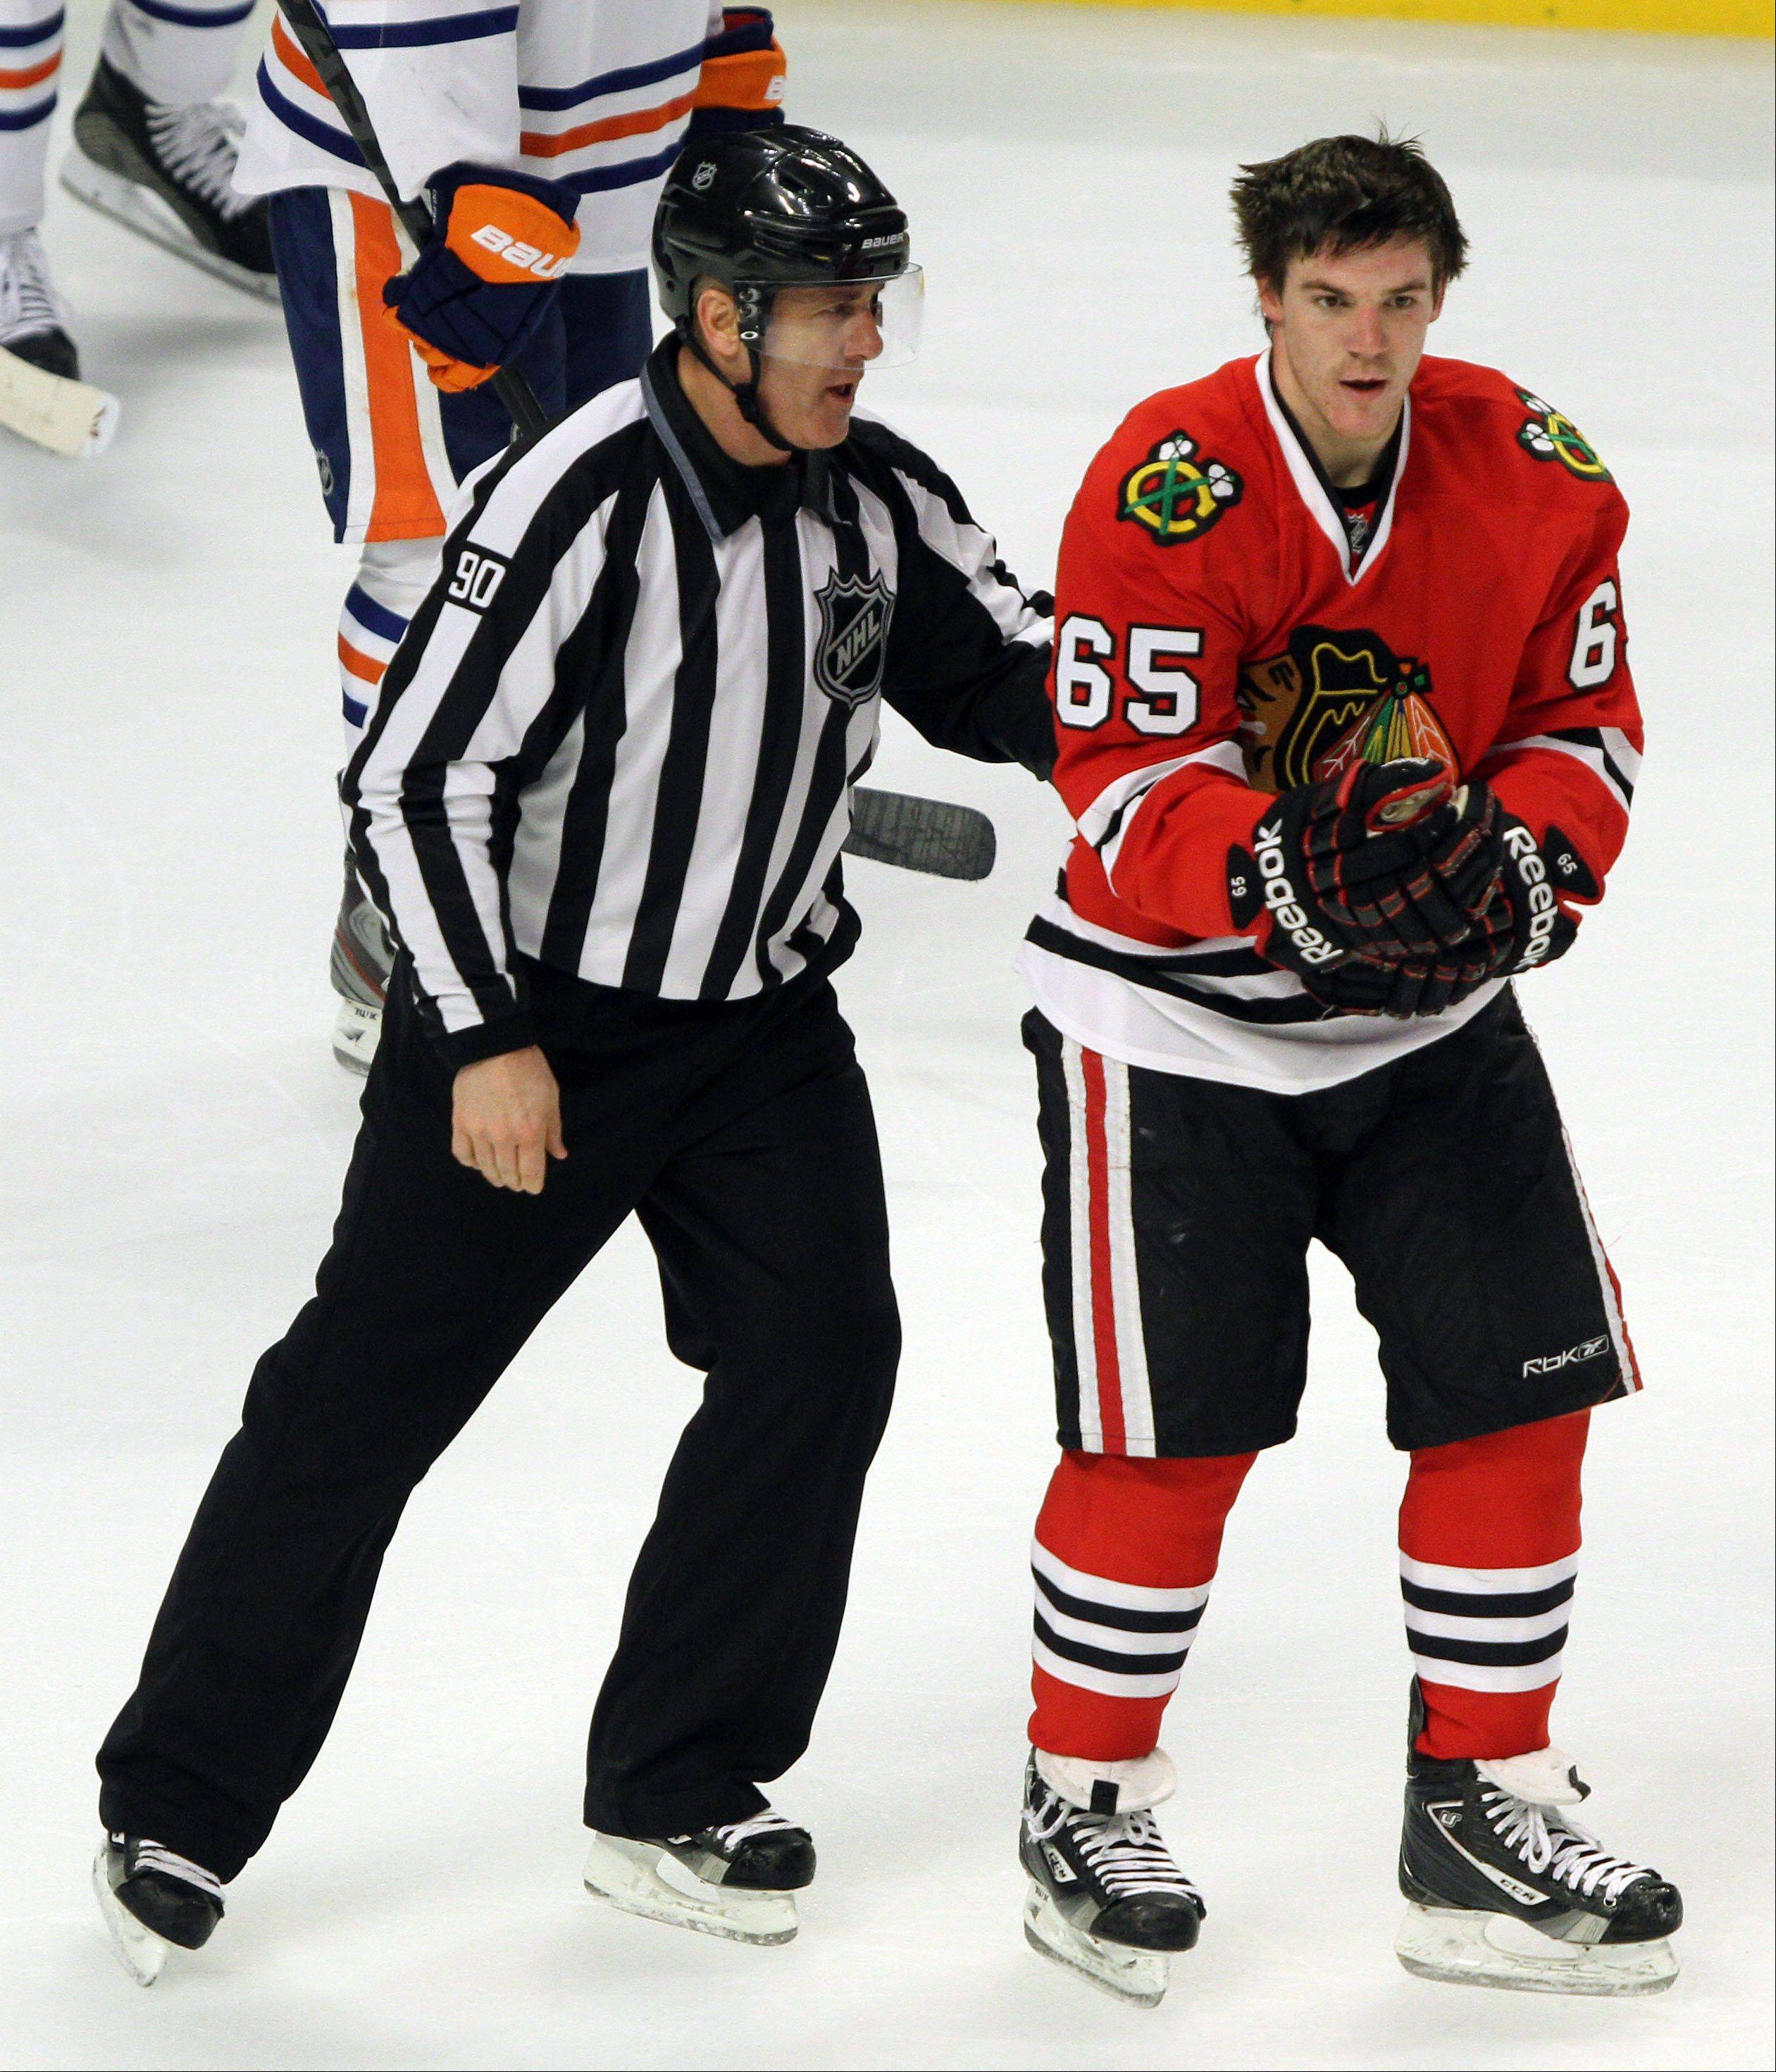 Steve Lundy/slundy@dailyherald.comNHL linesman Andy McElman leads Chicago Blackhawks center Andrew Shaw to the penalty box during their game against the Edmonton Oilers. McElman was hit in the face by a puck and suffered a serious injury. He's back working now. McElman is a native of Palatine.